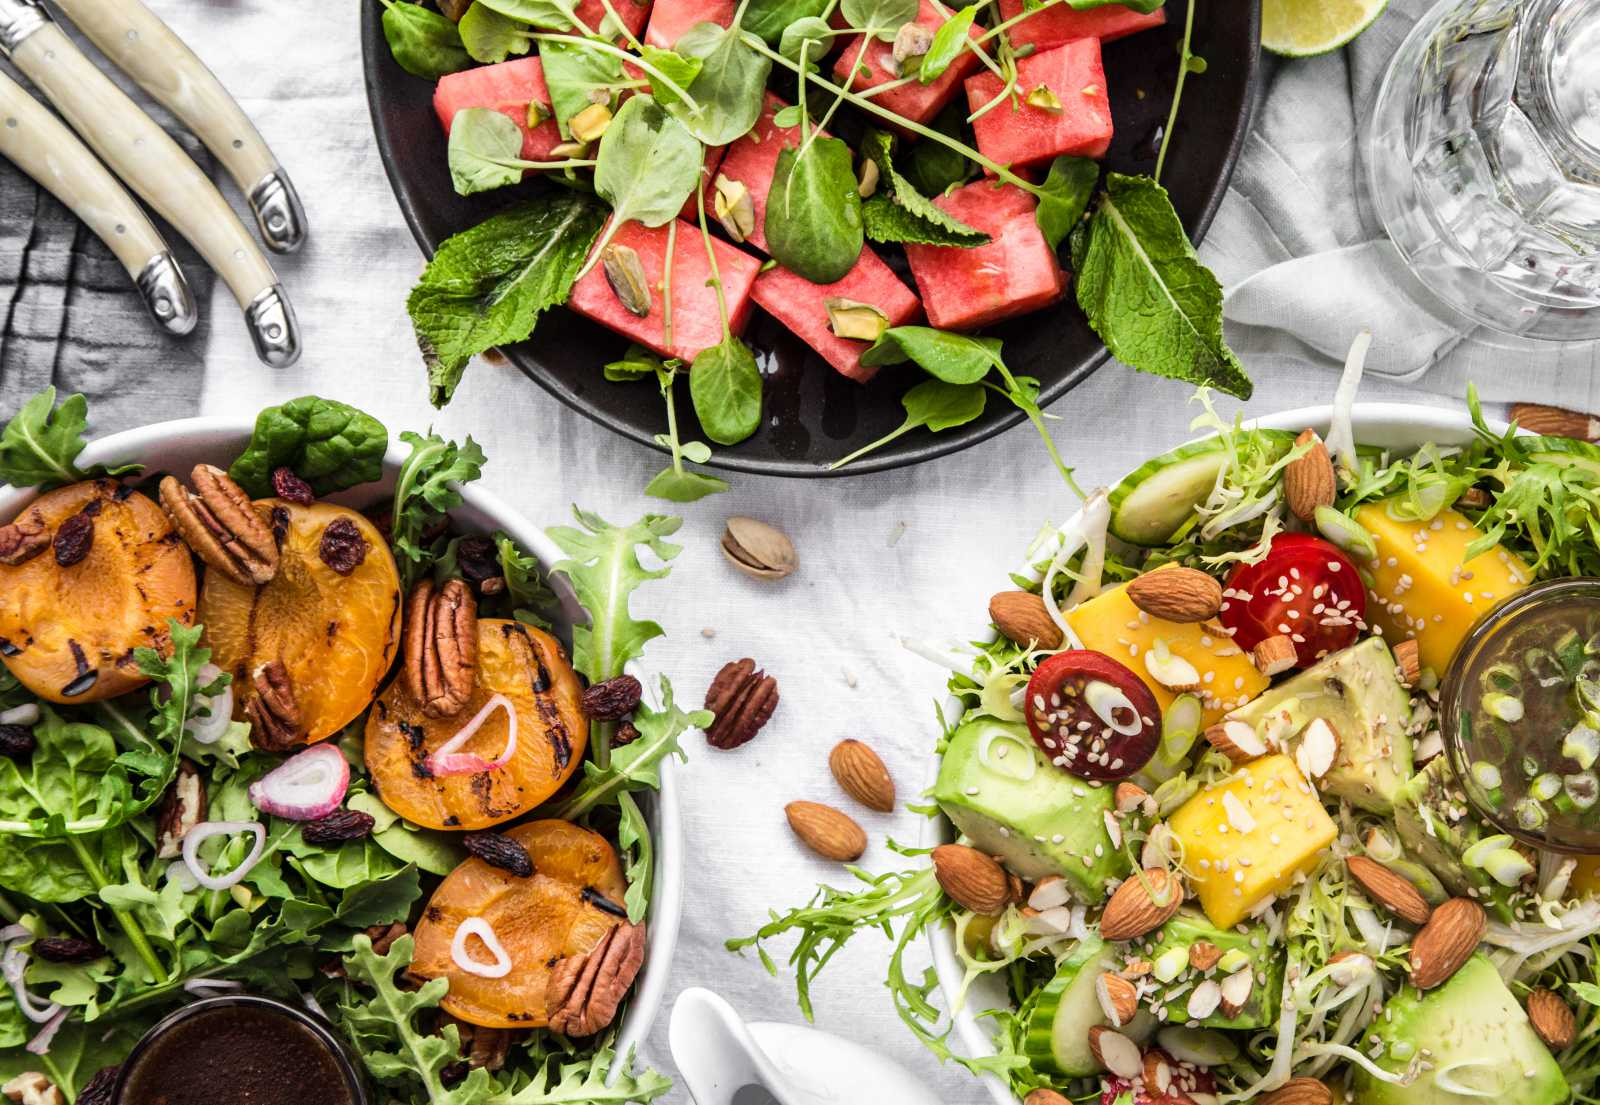 3 'Fruit + Nut' Salads to Make This Summer